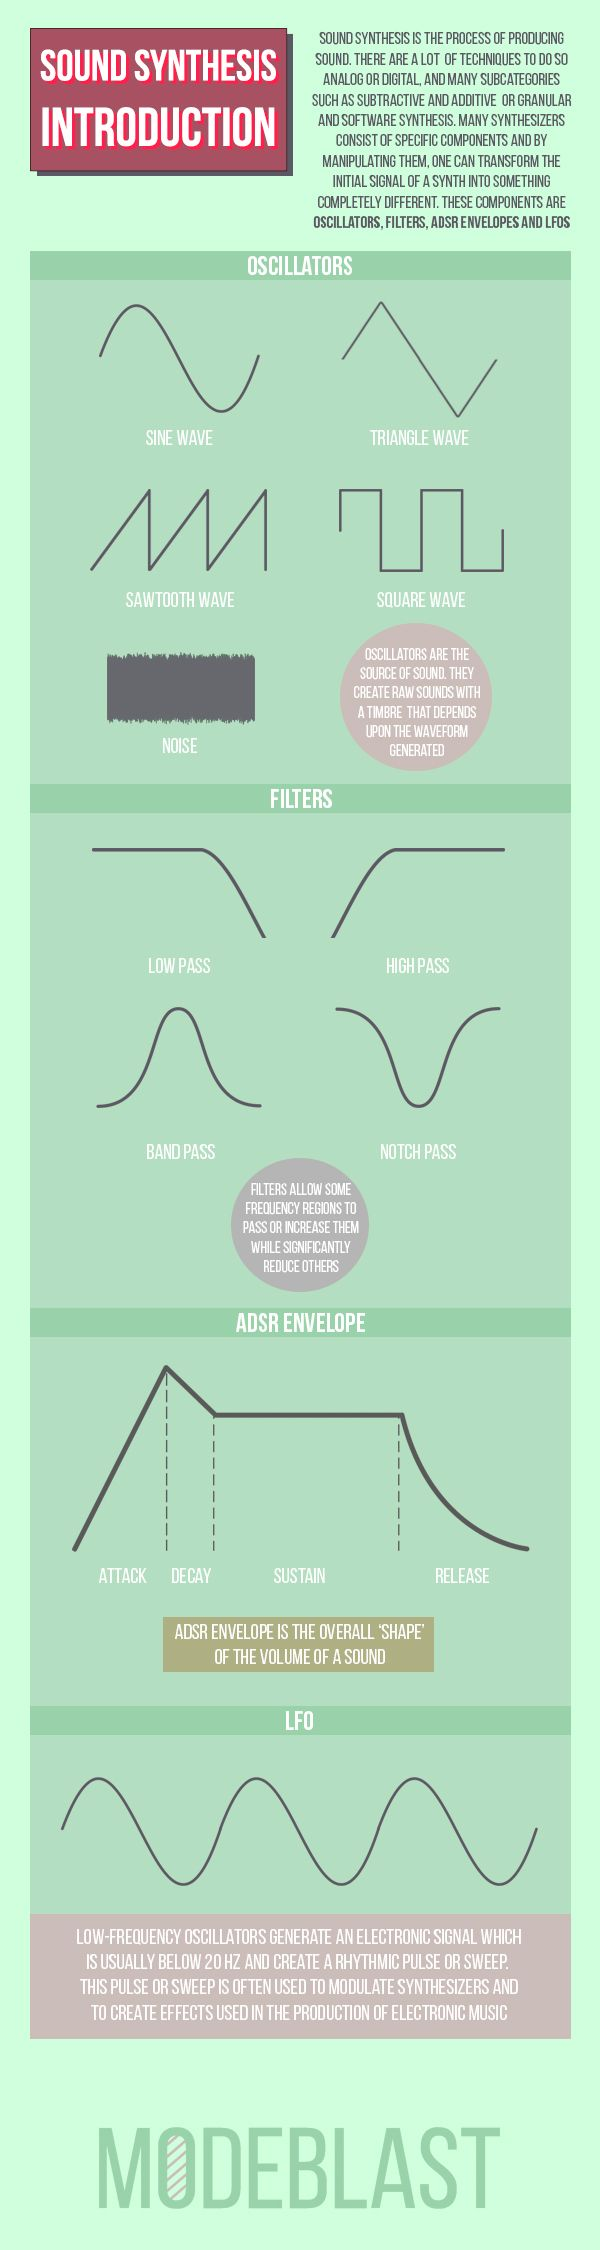 Sound Synthesis Introduction Infographic